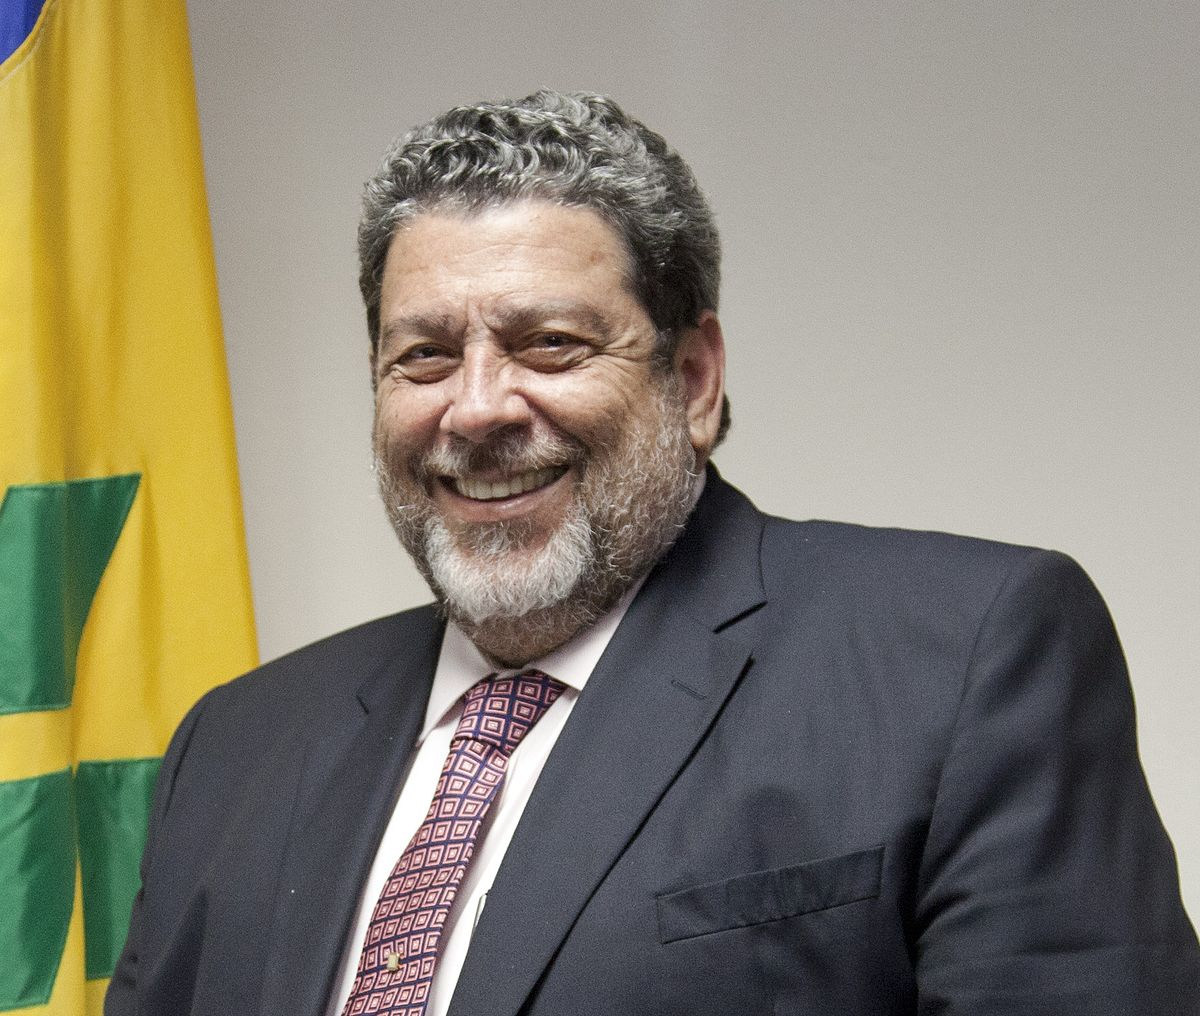 Photo of St. Vincent and the Grenadines Prime Minister Dr. Ralph Gonsalves and Former Prime Minister of Jamaica Mr. Bruce Golding to attend Regional Consultation on the CSME